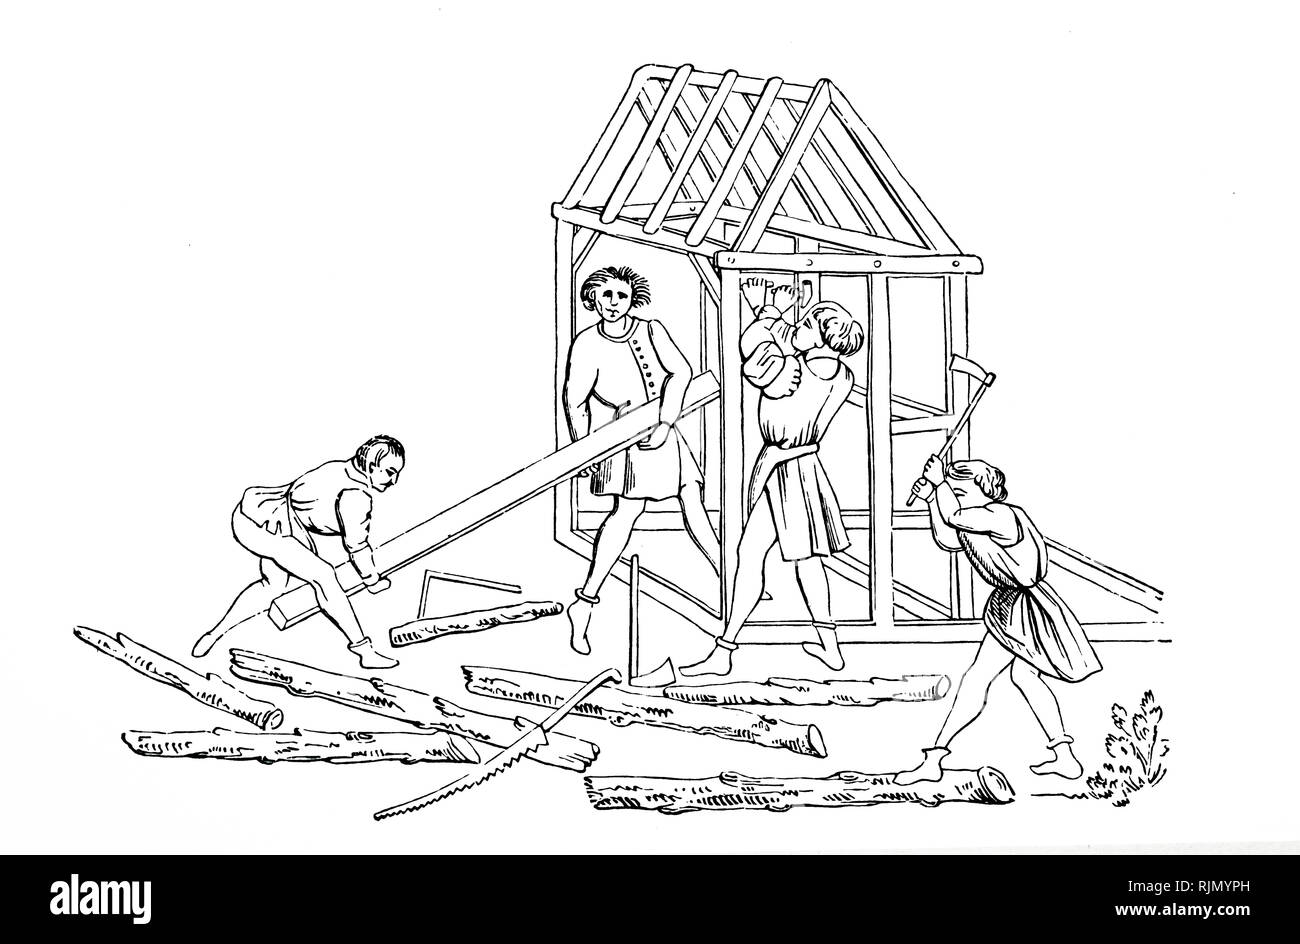 A woodcut engraving depicting carpenter's erecting a building. Woodcut after a fifteenth-century manuscript. Dated 19th century - Stock Image